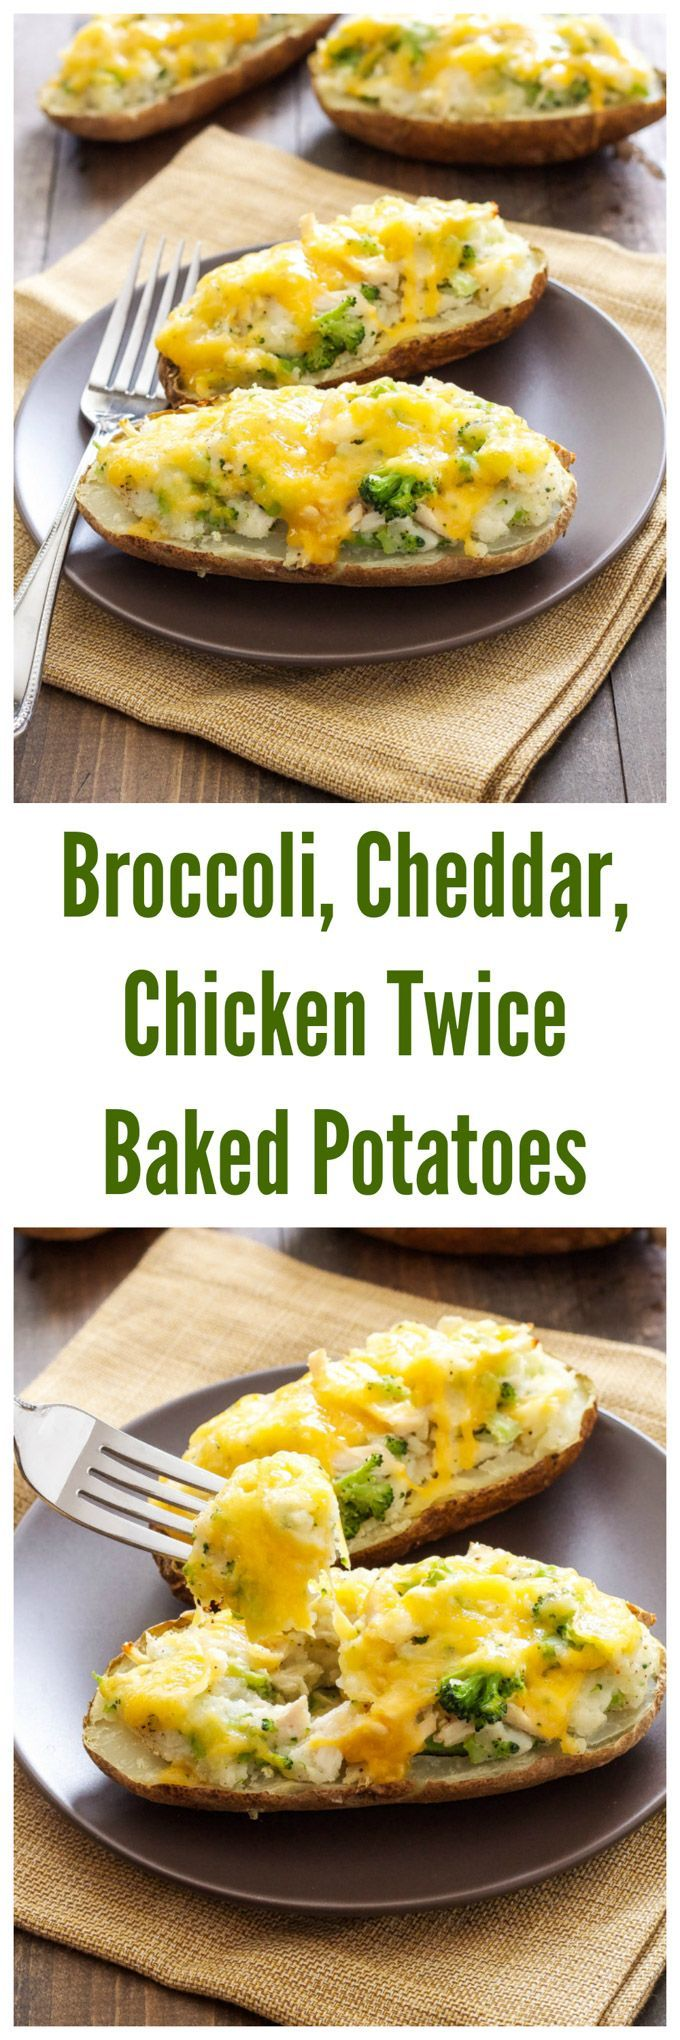 twice baked potatoes broccoli cheddar chicken twice baked potatoes ...